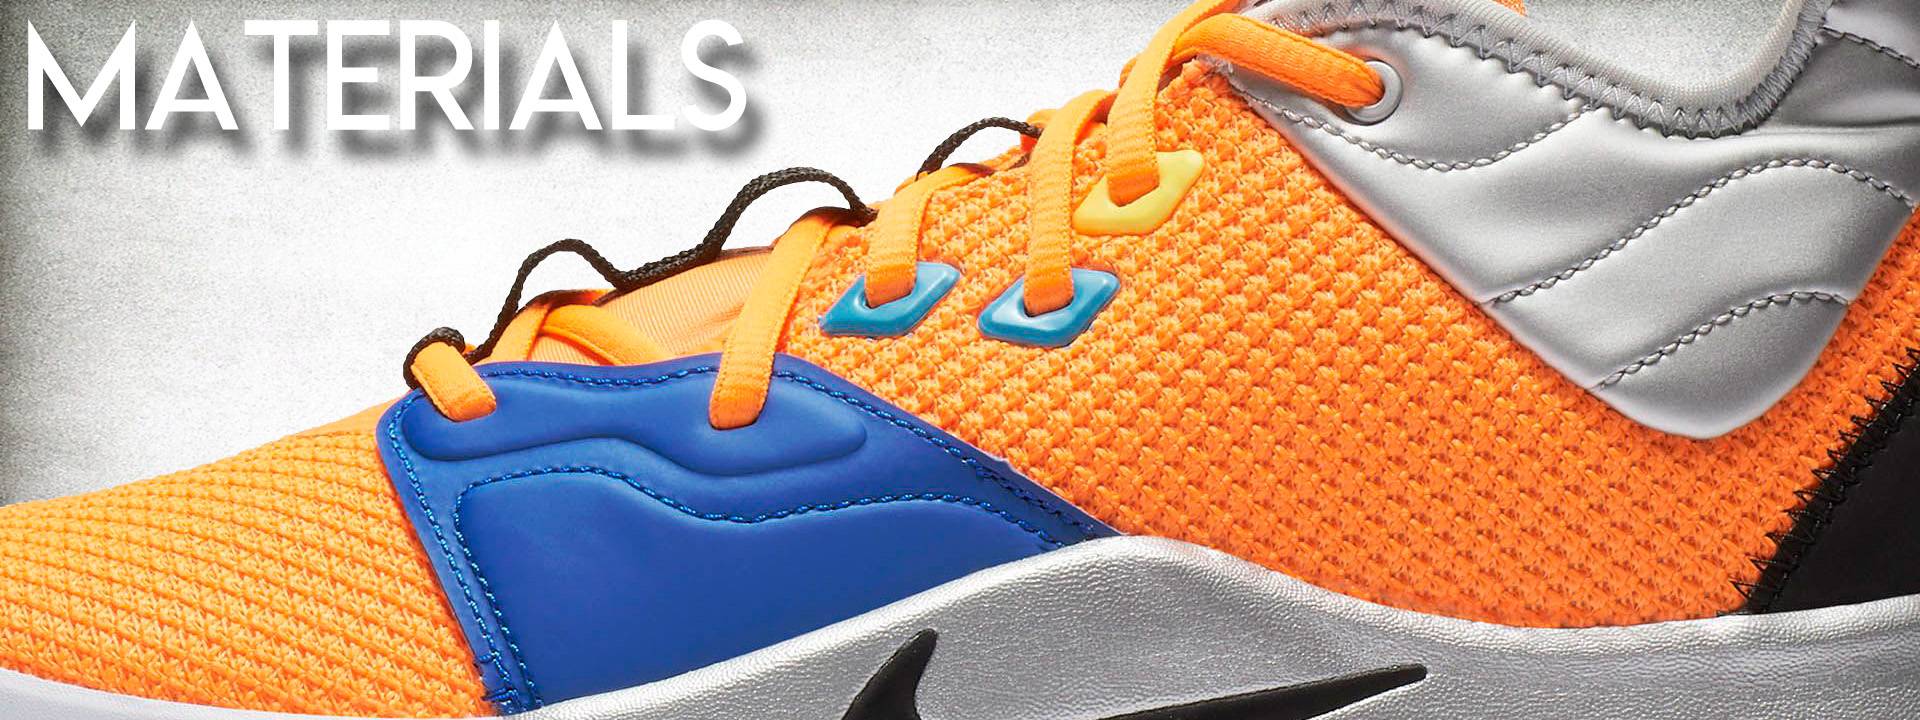 Nike-PG-3-Performance-Review-Materials - WearTesters c7d0646b0